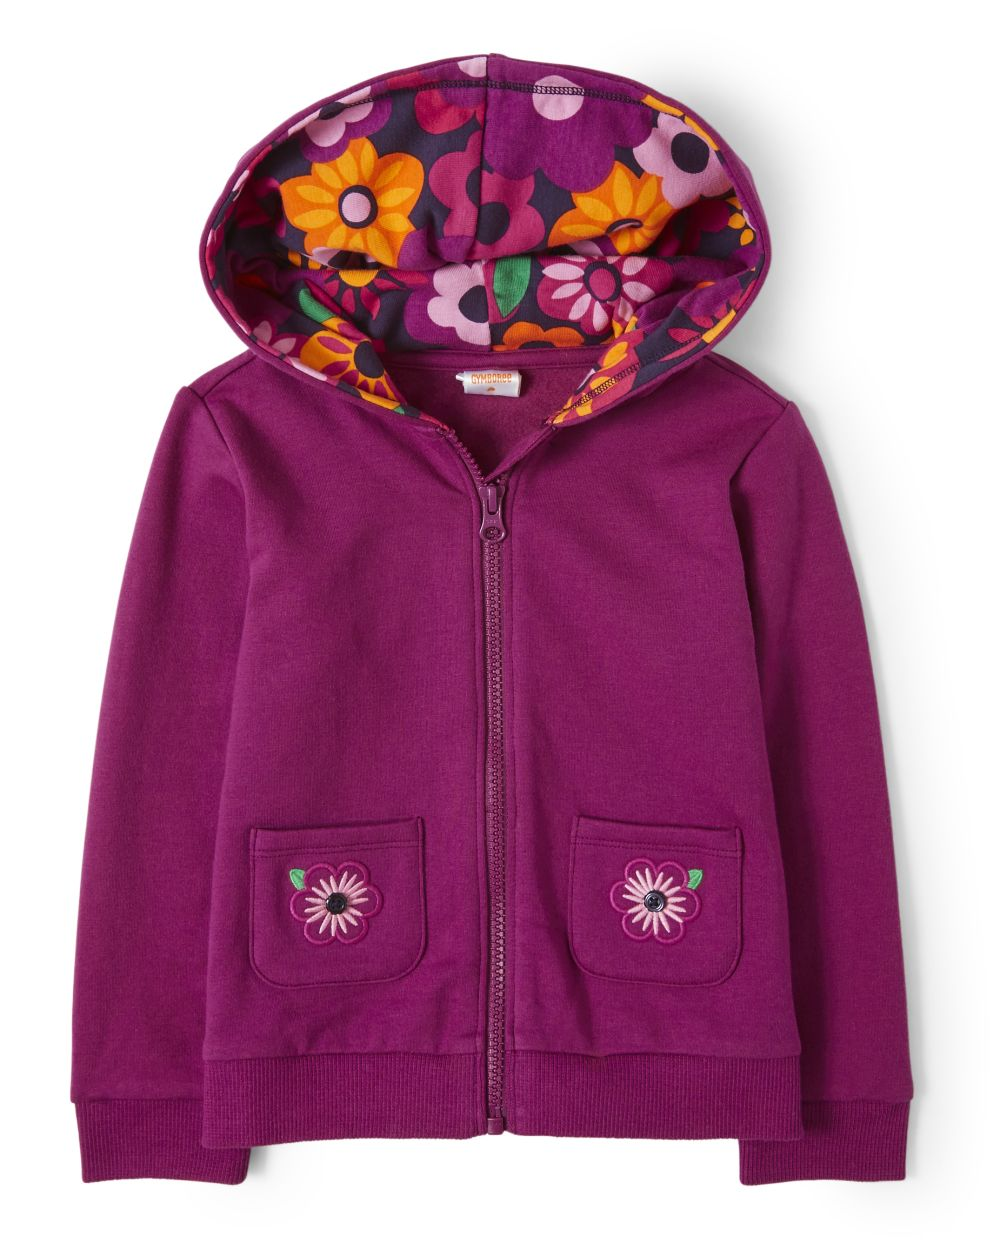 Girls Embroidered Flowers Zip Up Hoodie - Berry Cute